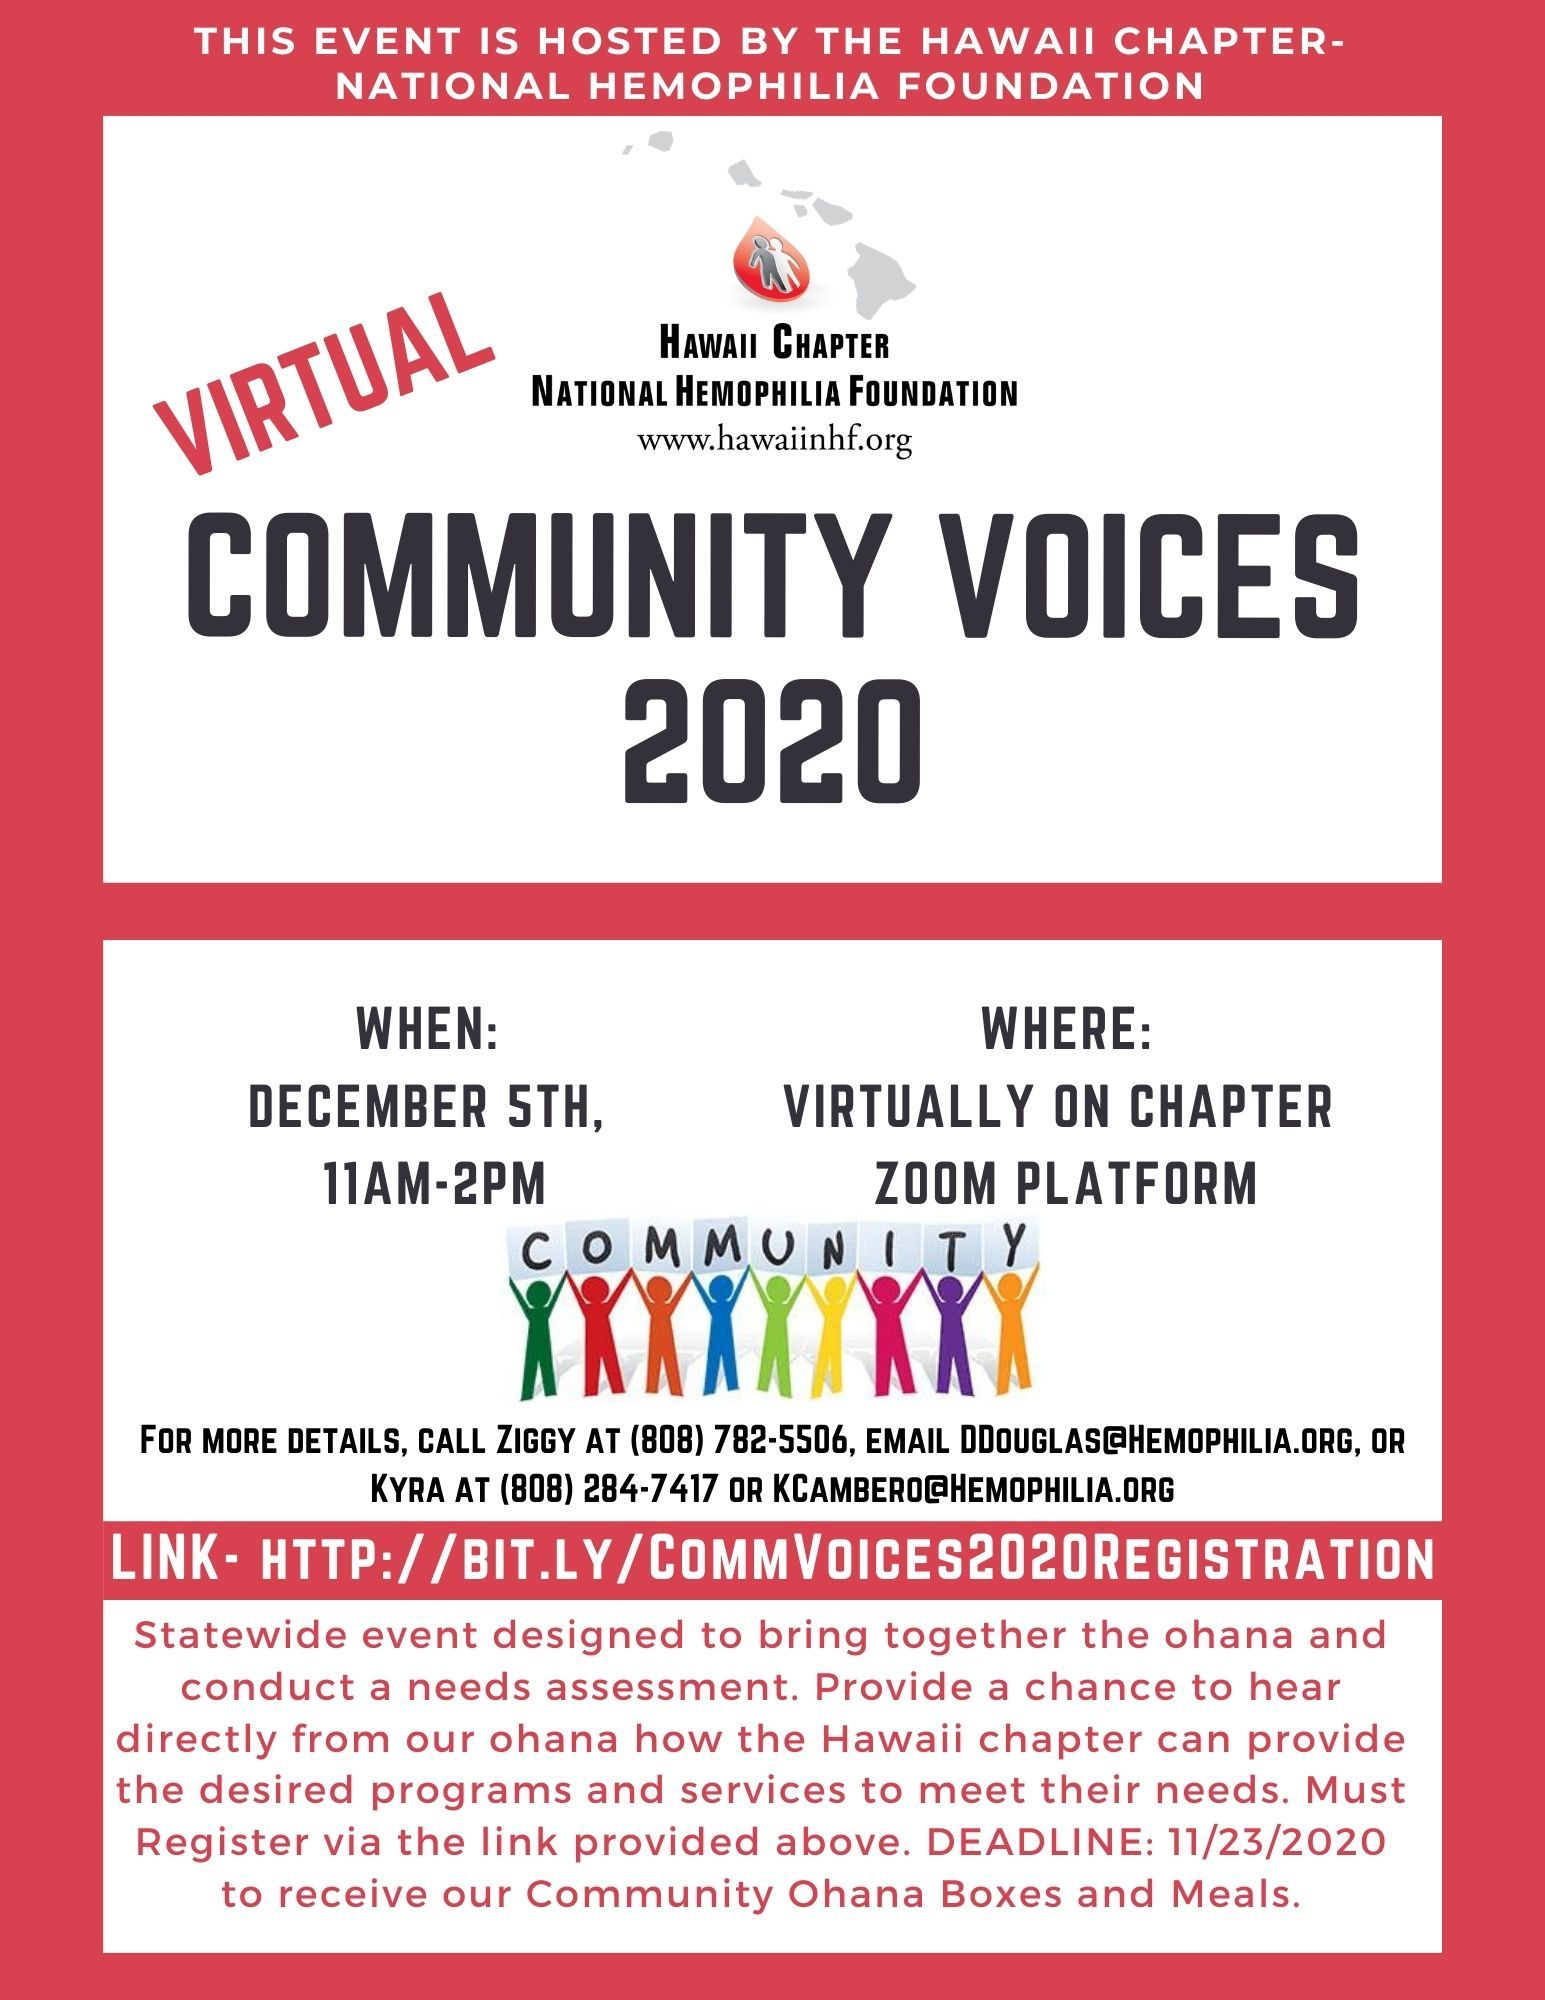 Virtual Community Voices 2020